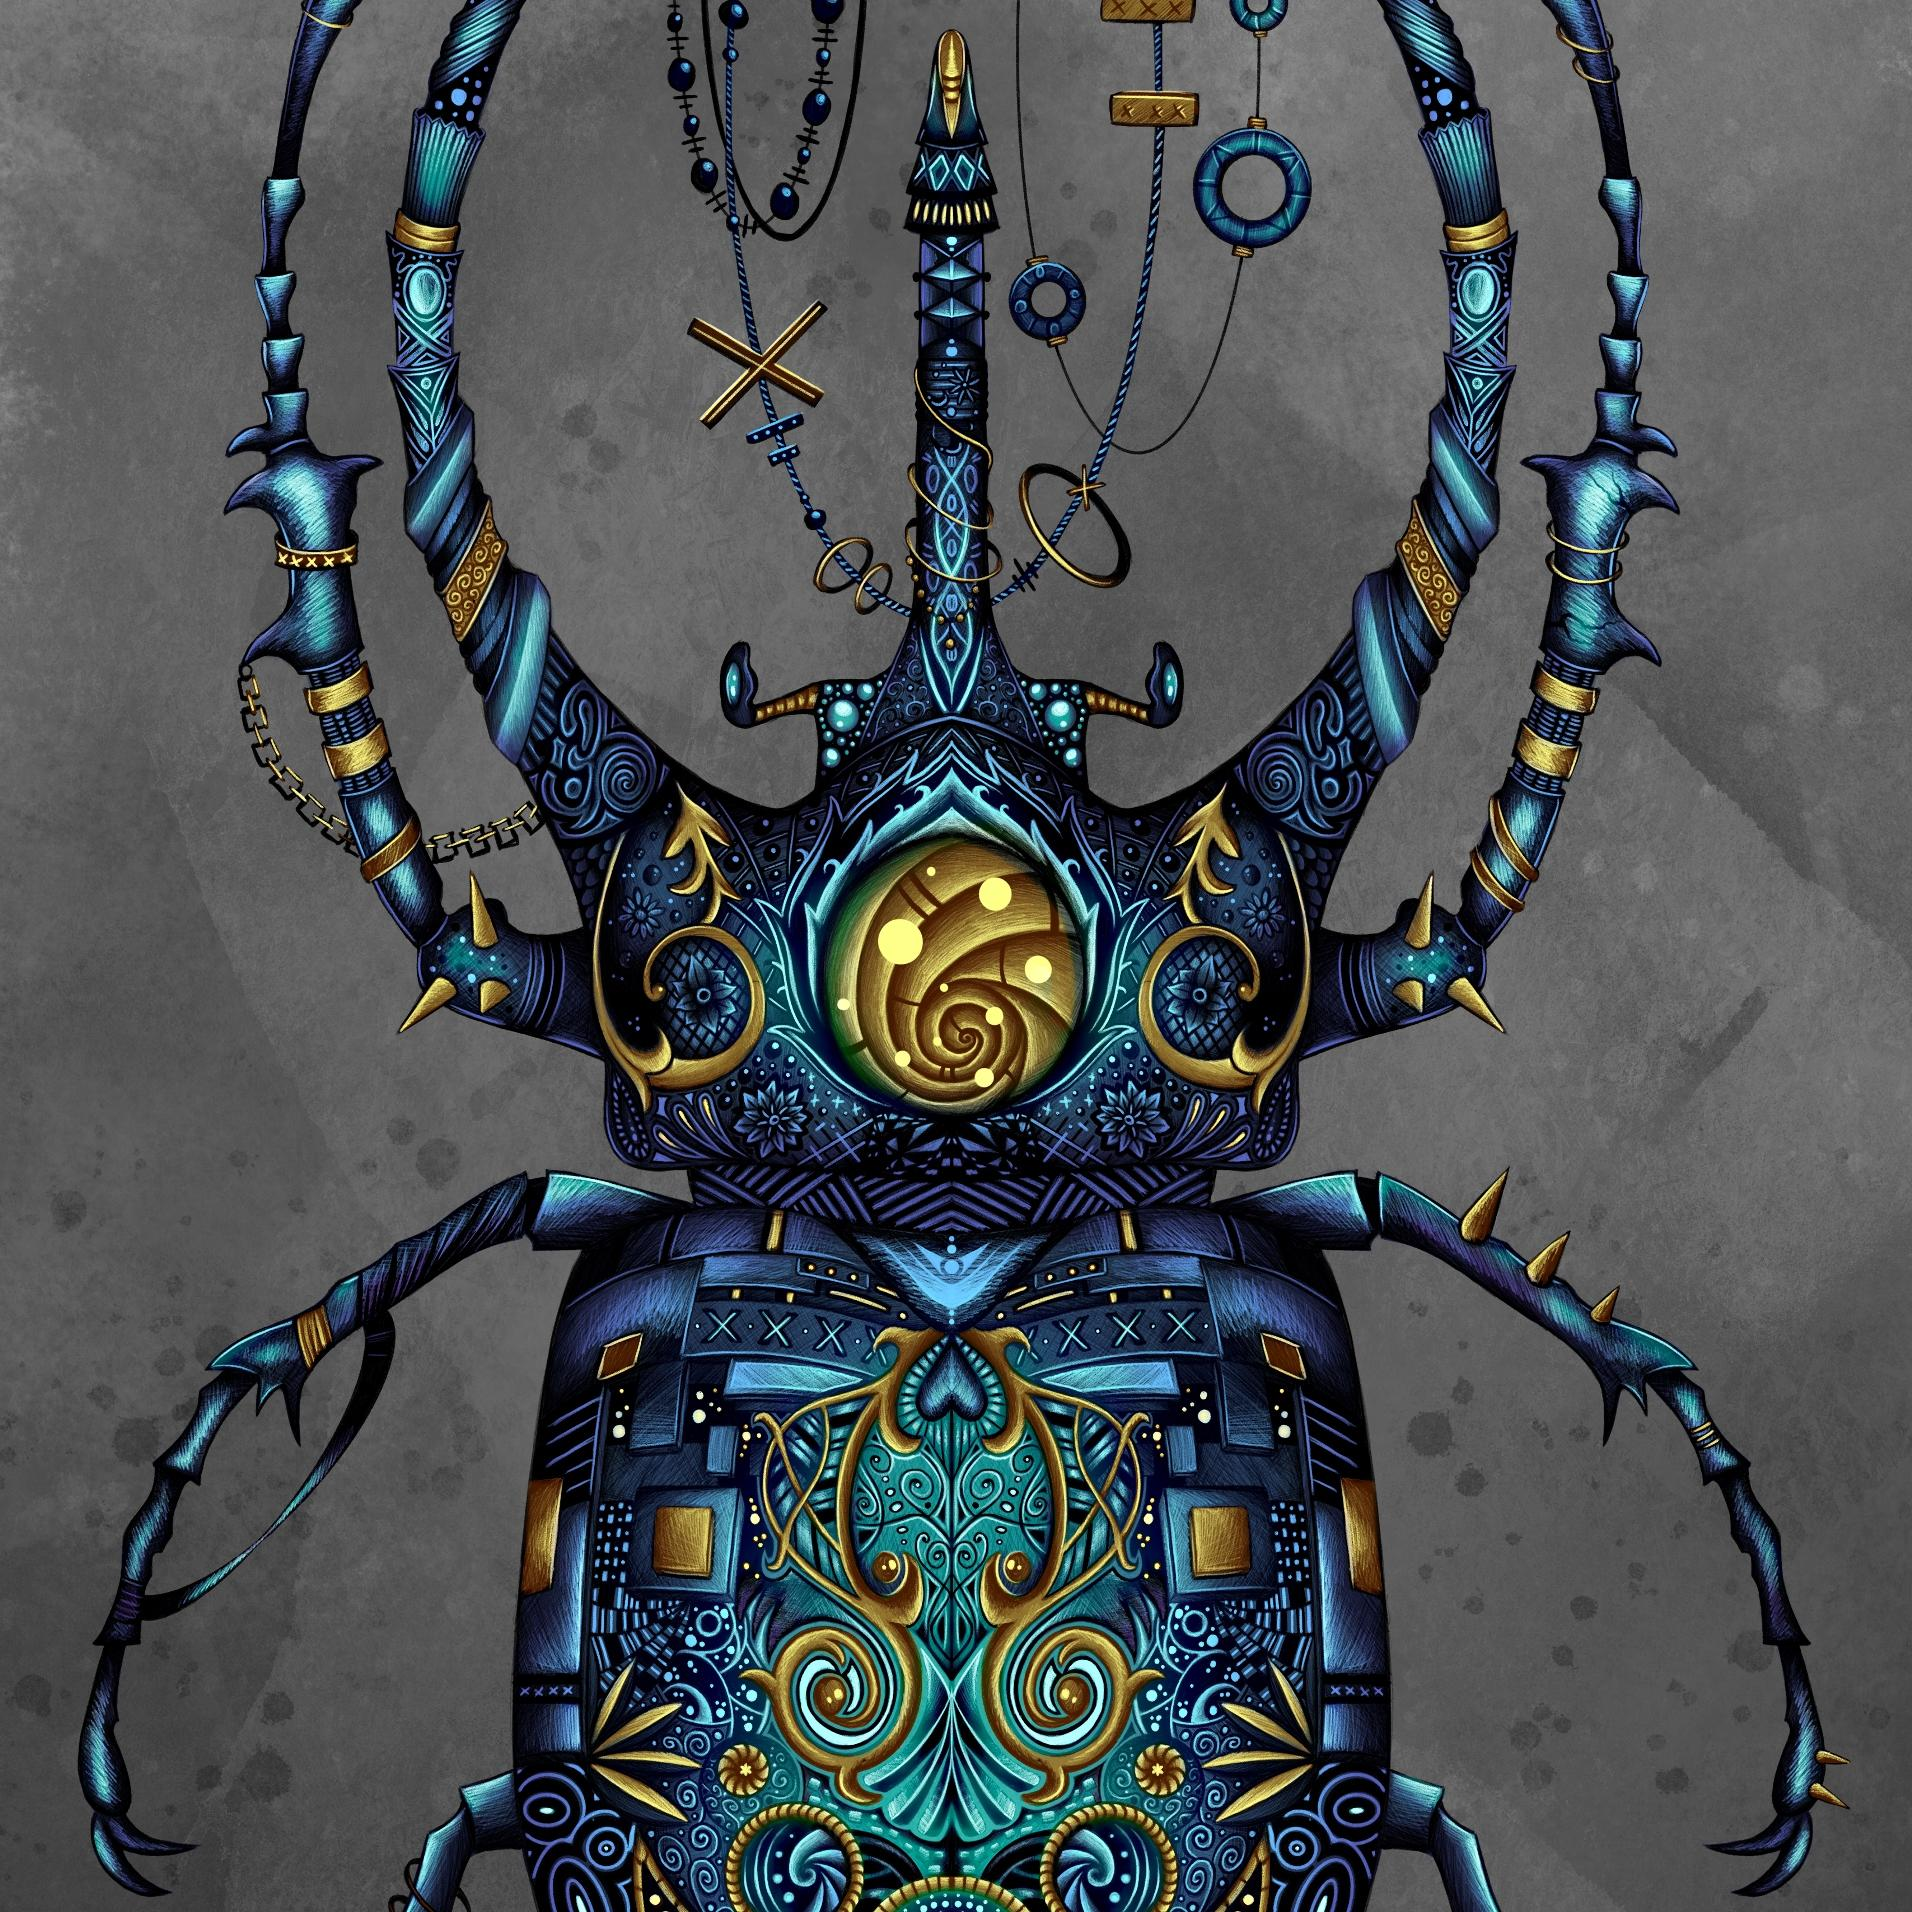 Close up of a digital painting by Lily Bourne printed on eco fine art paper titled Beetle showing a jewel encrusted beetle coloured blue and turquoise with grey background in a steam punk style.